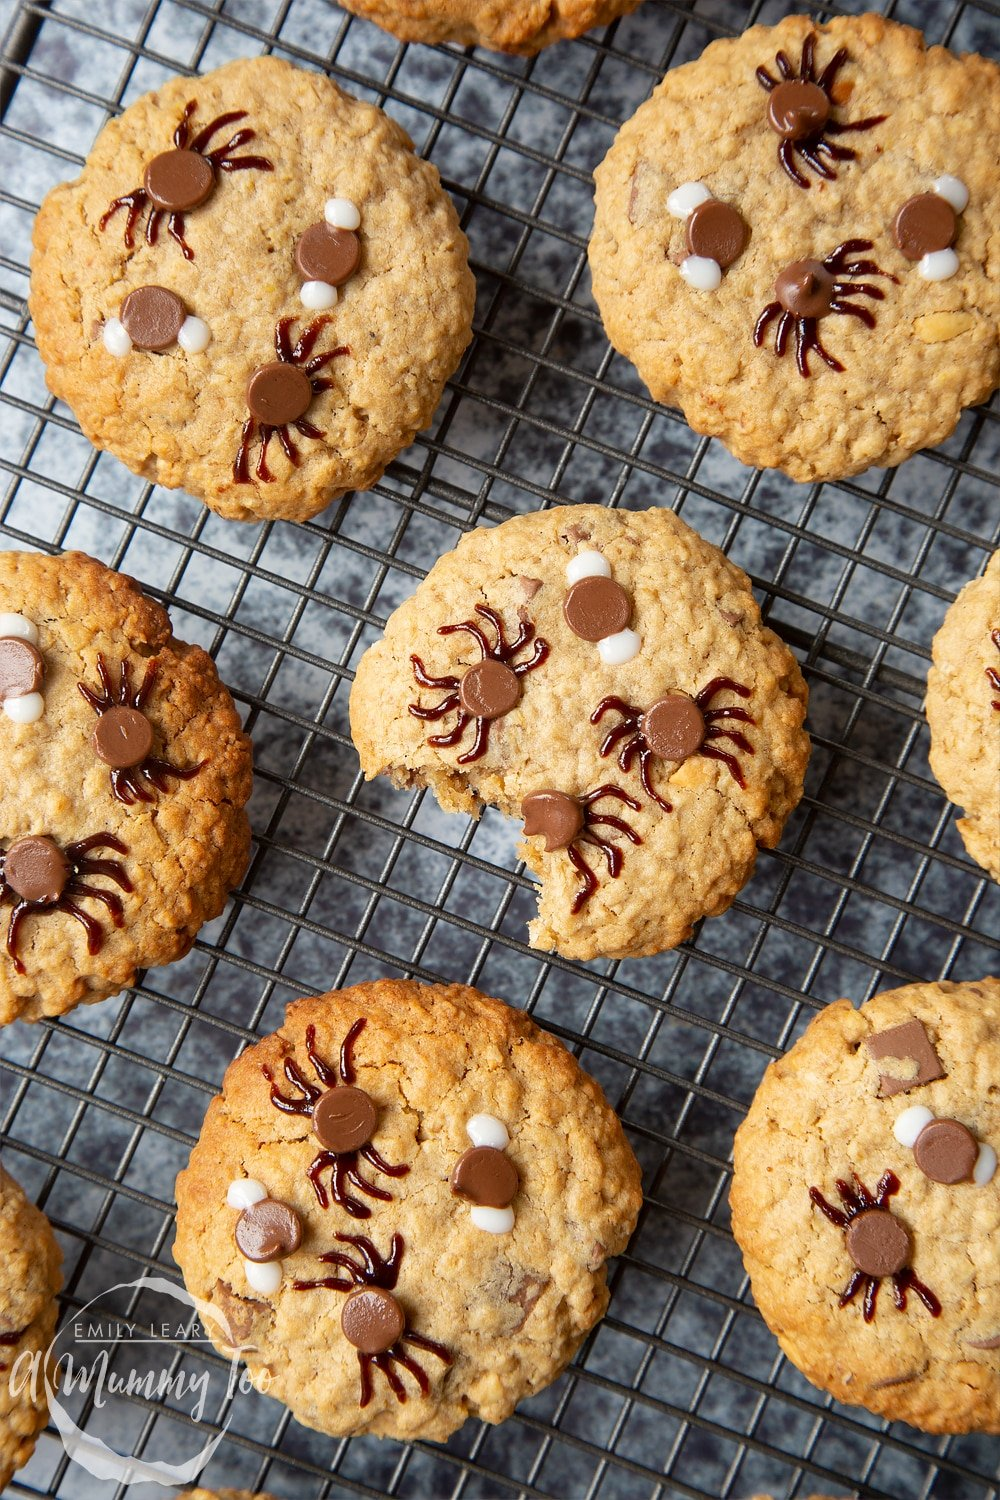 Halloween peanut butter spider cookies arranged on a metal cooling rack. The cookies are decorated with chocolate chips and icing to resemble spiders and flies. One cookies has a bite out of it.